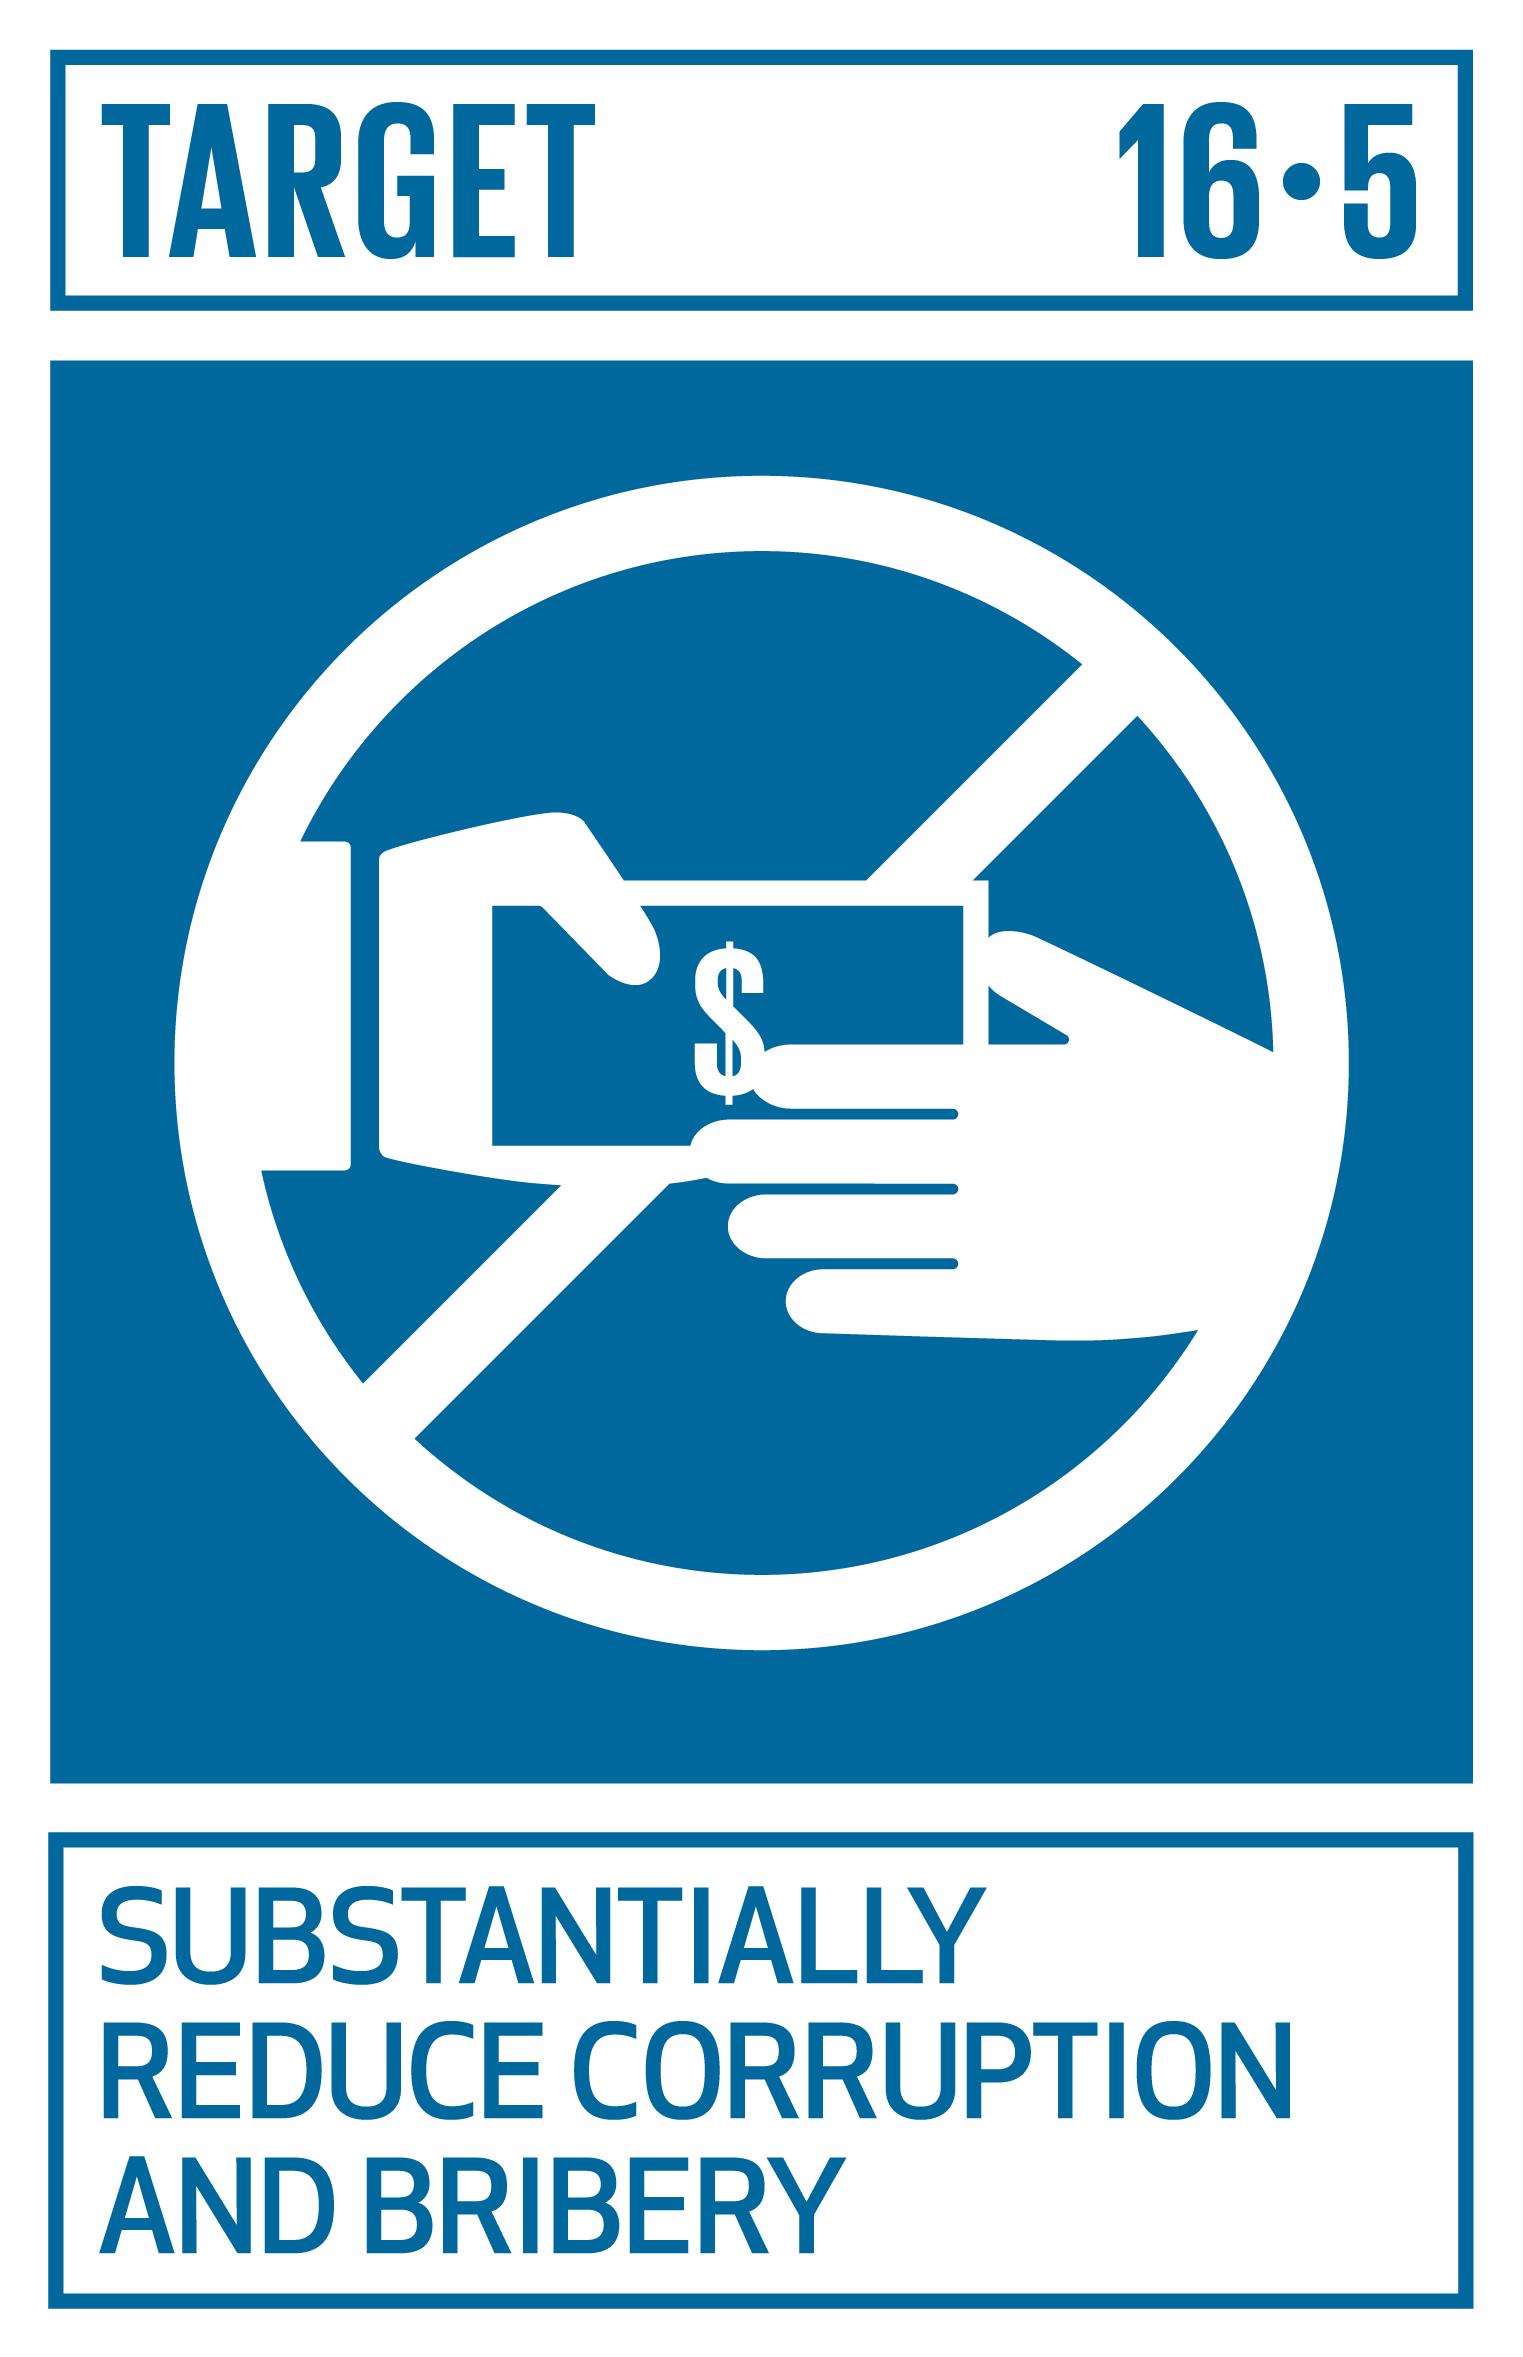 Substantially reduce corruption and bribery in all their forms.   INDICATORS    16.5.1  Proportion of persons who had at least one contact with a public official and who paid a bribe to a public official, or were asked for a bribe by those public officials, during the previous 12 months   16.5.2  Proportion of businesses that had at least one contact with a public official and that paid a bribe to a public official, or were asked for a bribe by those public officials during the previous 12 months